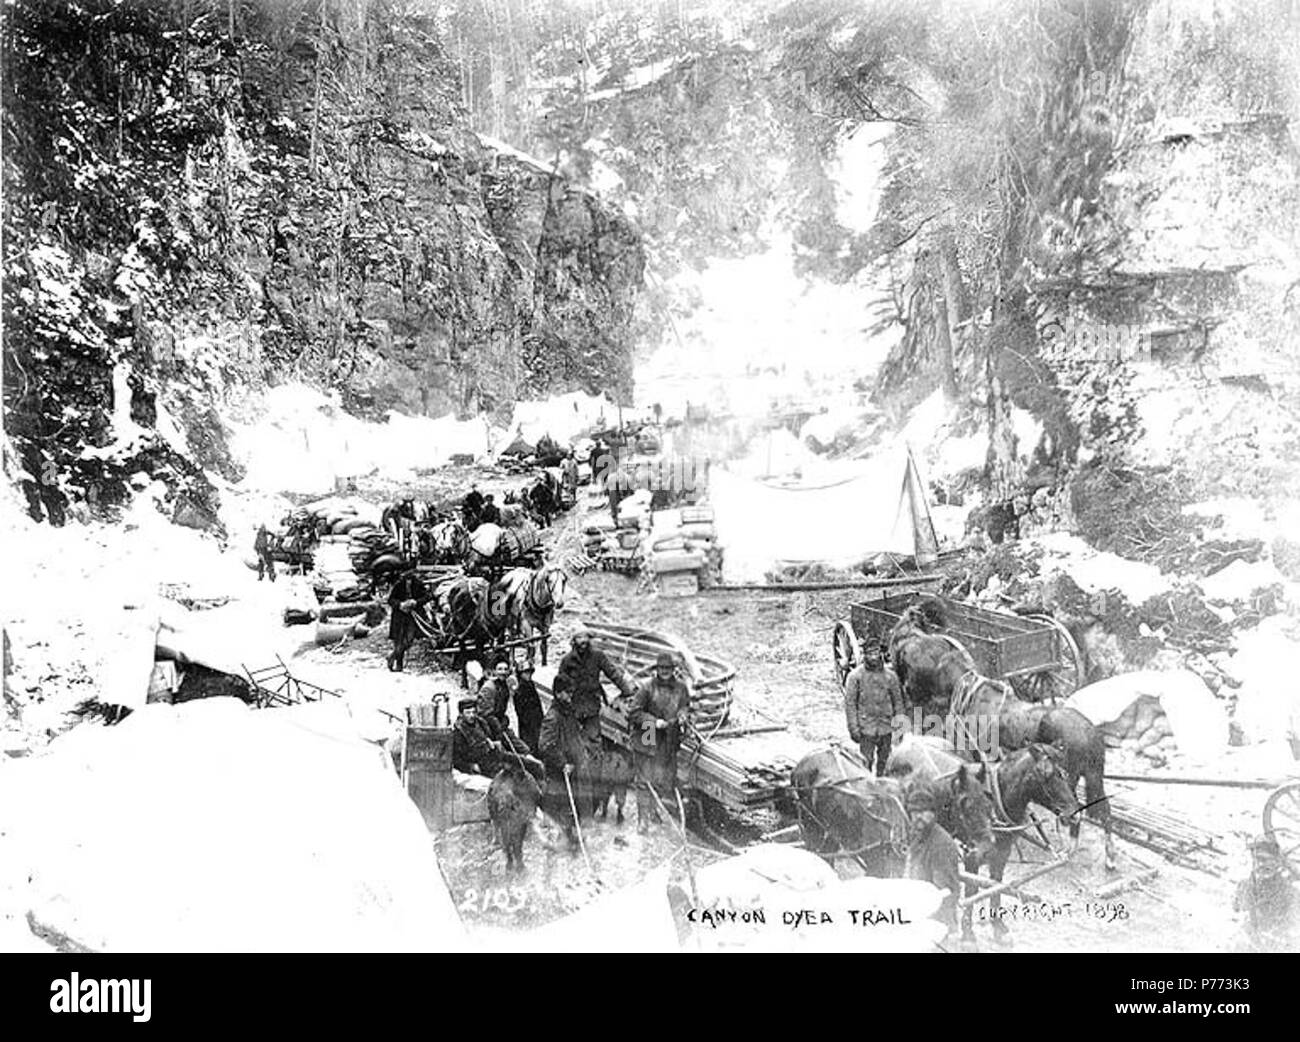 . English: Klondikers with horse drawn wagons and sled at Canyon, Chilkoot Trail, Alaska, 1898. English: Caption on image: 'Canyon, Dyea Trail c. 1898' Original image in Hegg Album 1, page 27 . Klondike Gold Rush . Additional image in PH Coll 557.2 Subjects (LCTGM): Canyons--Alaska; Horses--Alaska-; Carts & wagons--Alaska; Tents--Alaska Subjects (LCSH): Chilkoot Trail; Trails--Alaska  . 1898 7 Klondikers with horse drawn wagons and sled at Canyon, Chilkoot Trail, Alaska, 1898 (HEGG 187) - Stock Image